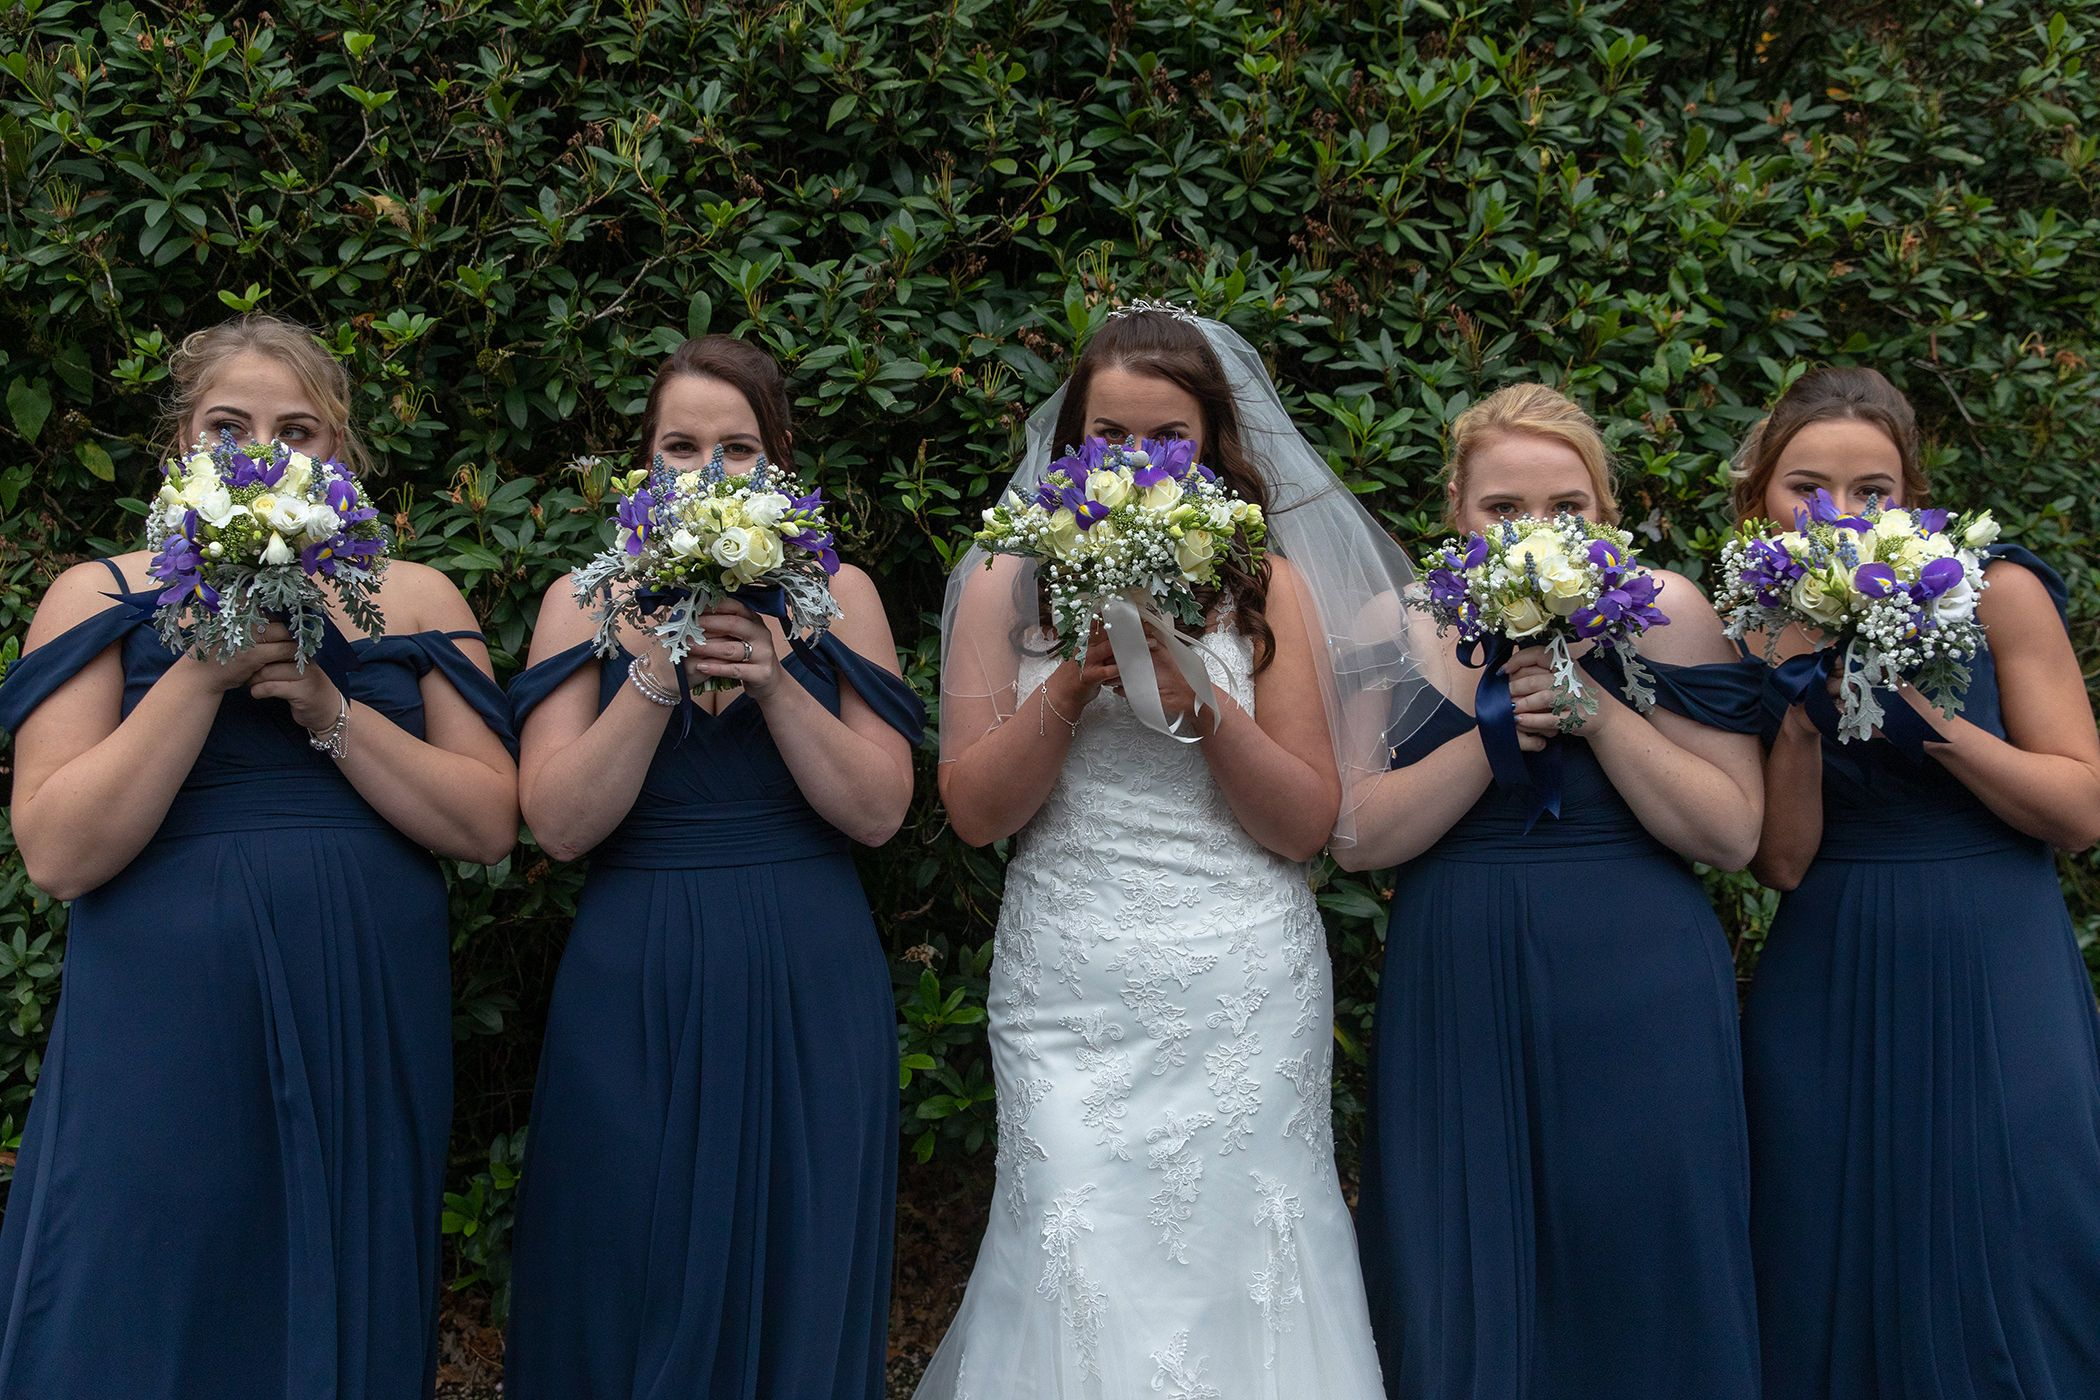 the bride and bridesmaids photo